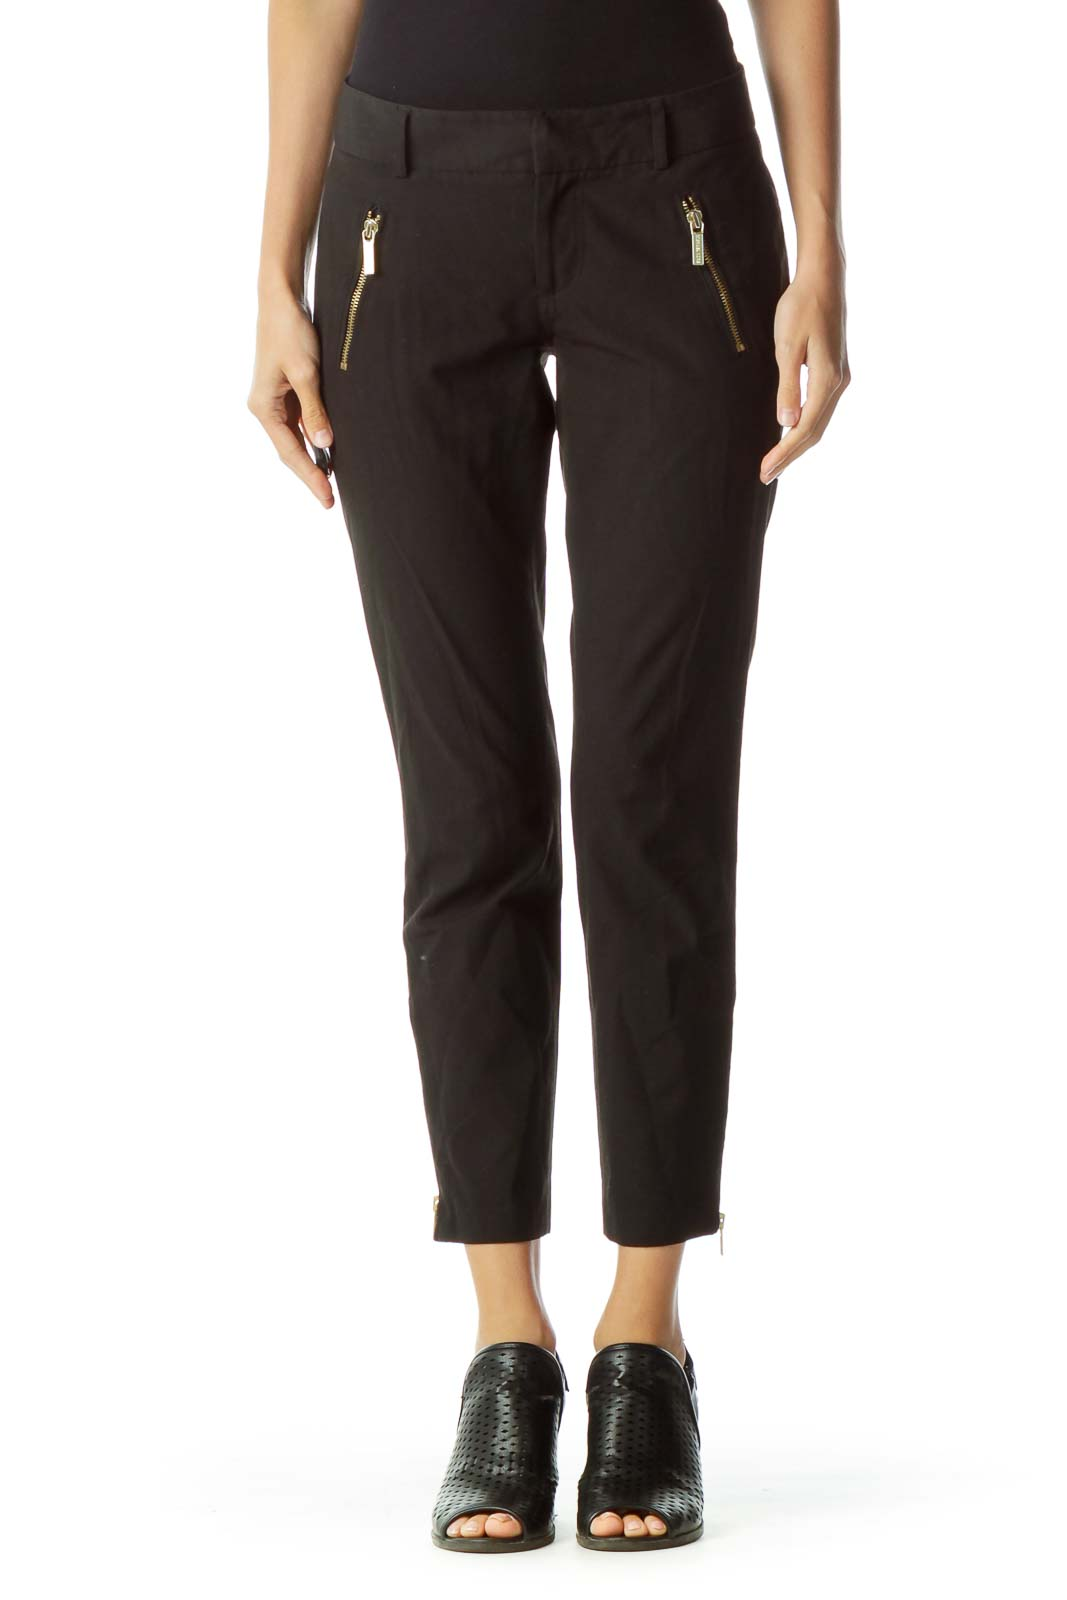 Black Gold Zippered Slacks